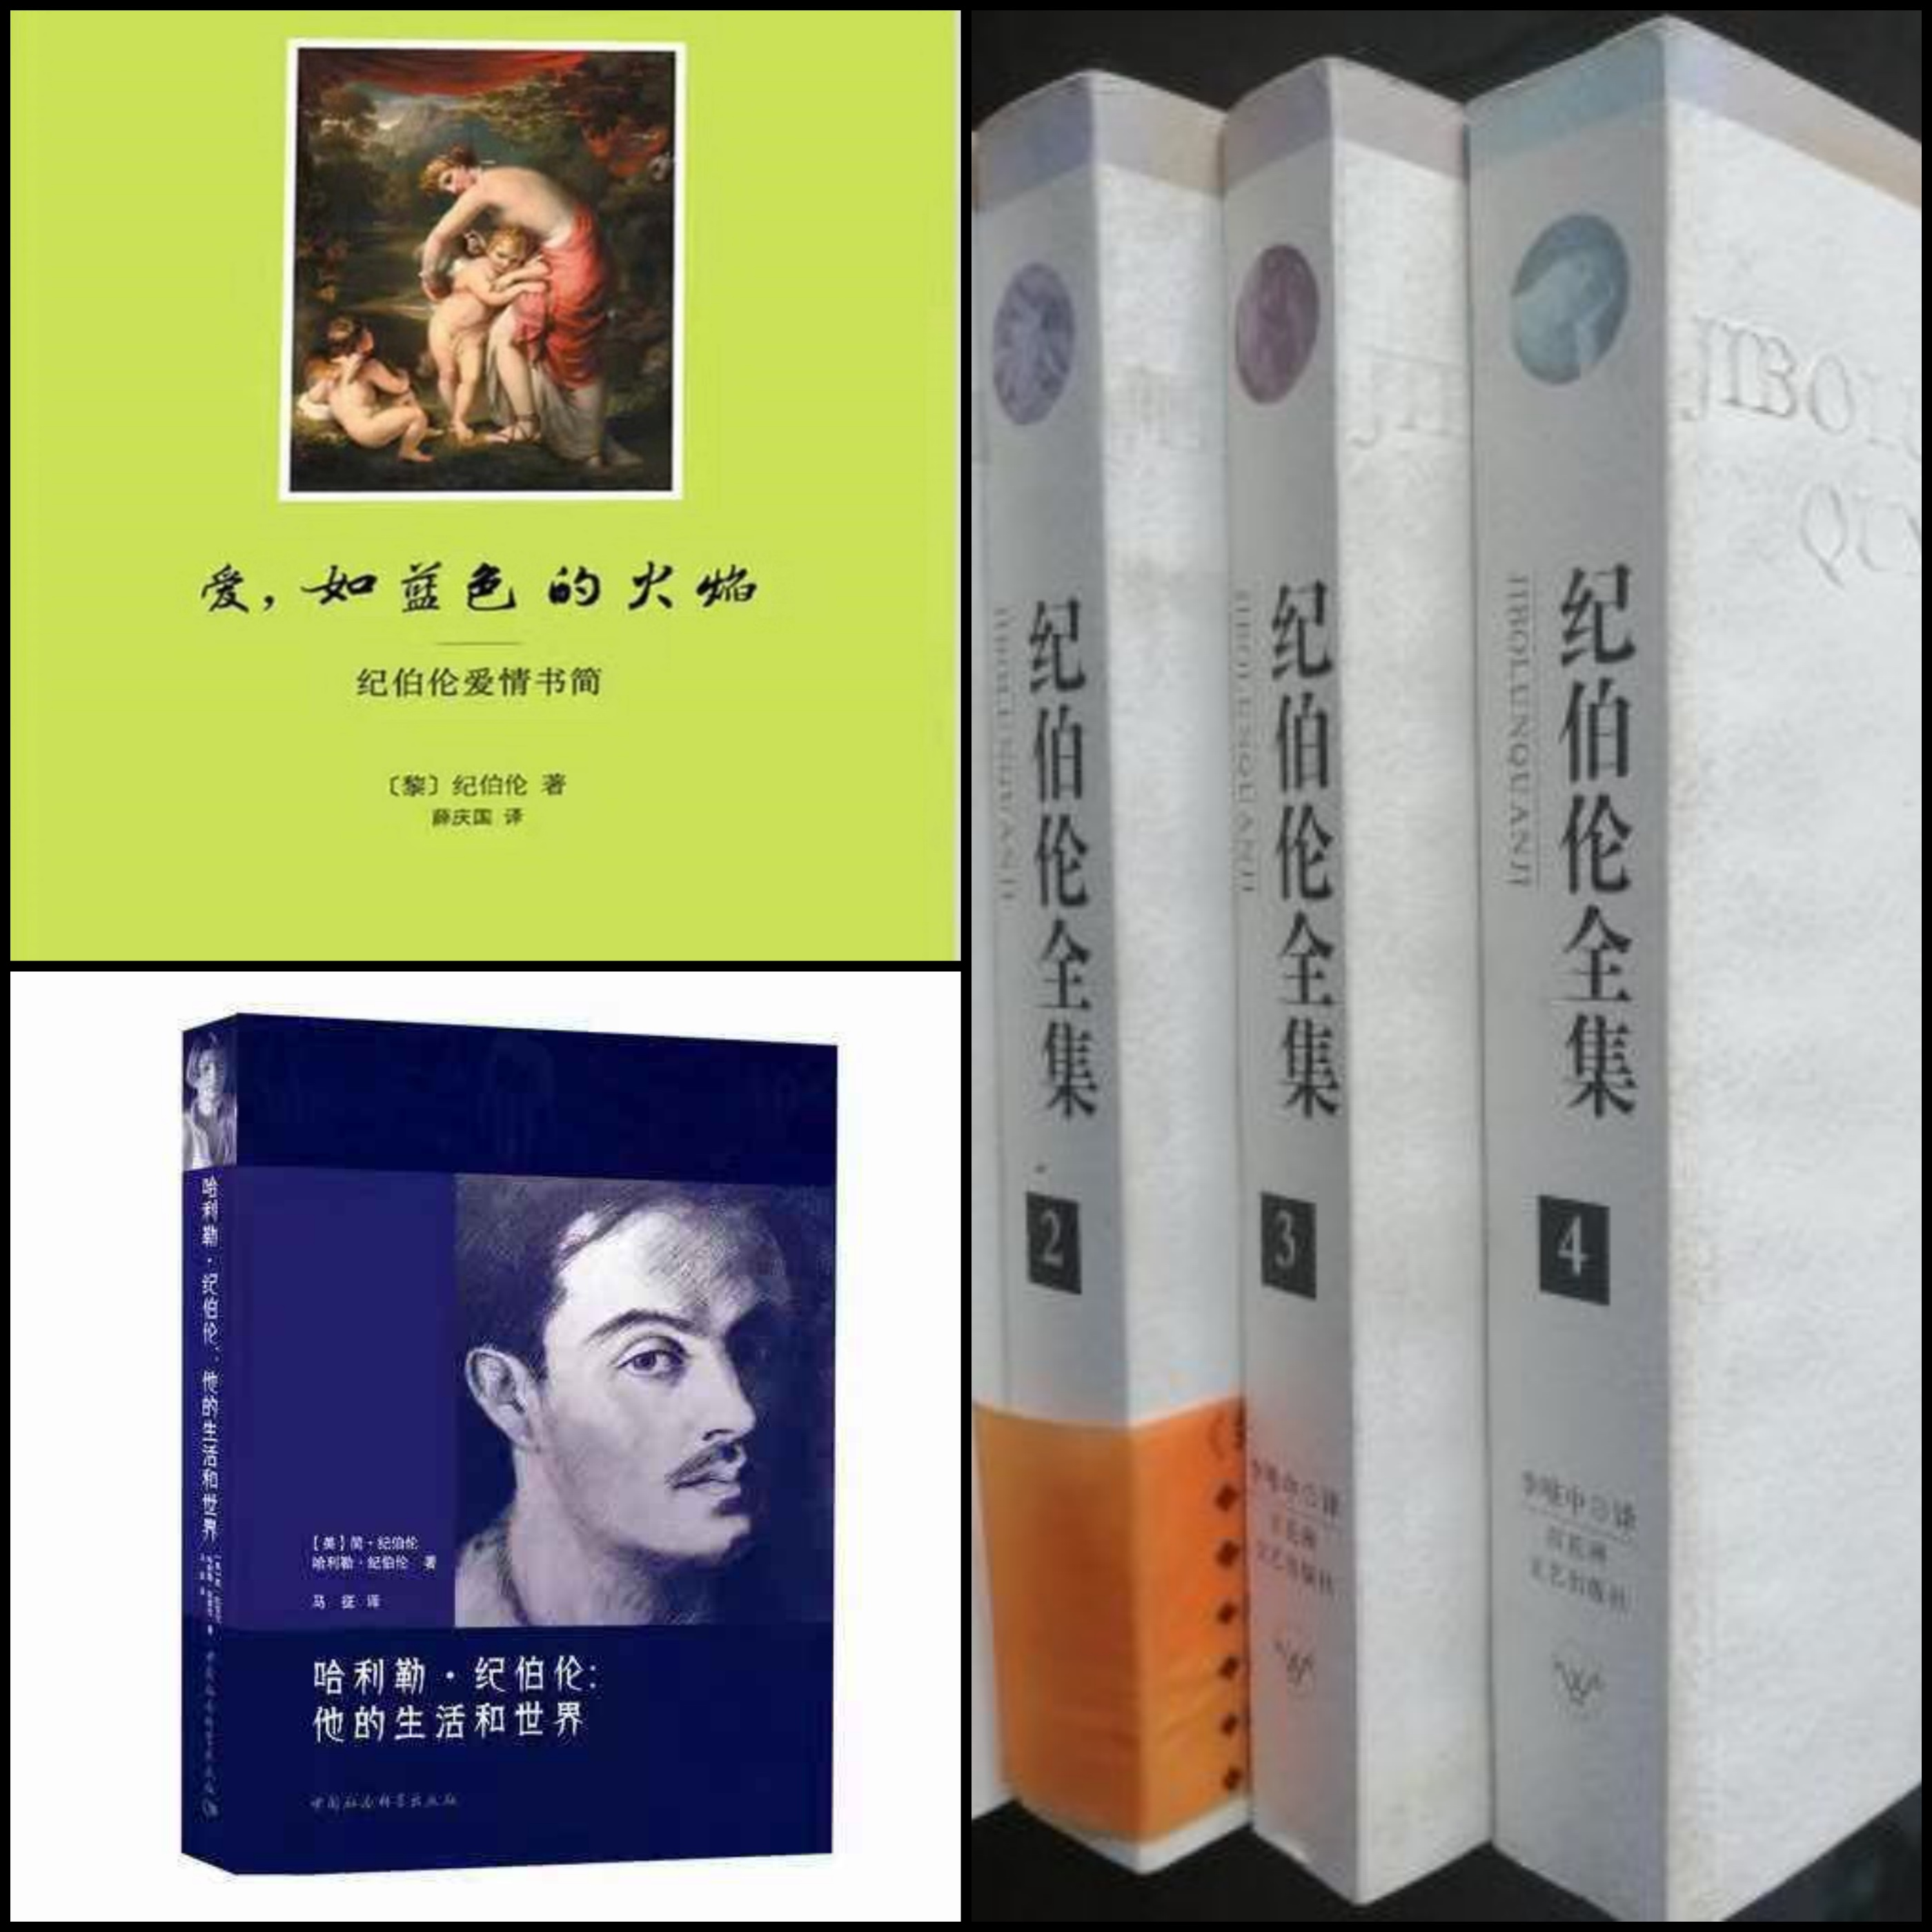 Gibran's Love Letters(Qingguo Xue) 2001, Kahlil Gibran:His Life and World (Zheng Ma) 2016, The Complete Works of Gibran (Weizhong Li) 2007,